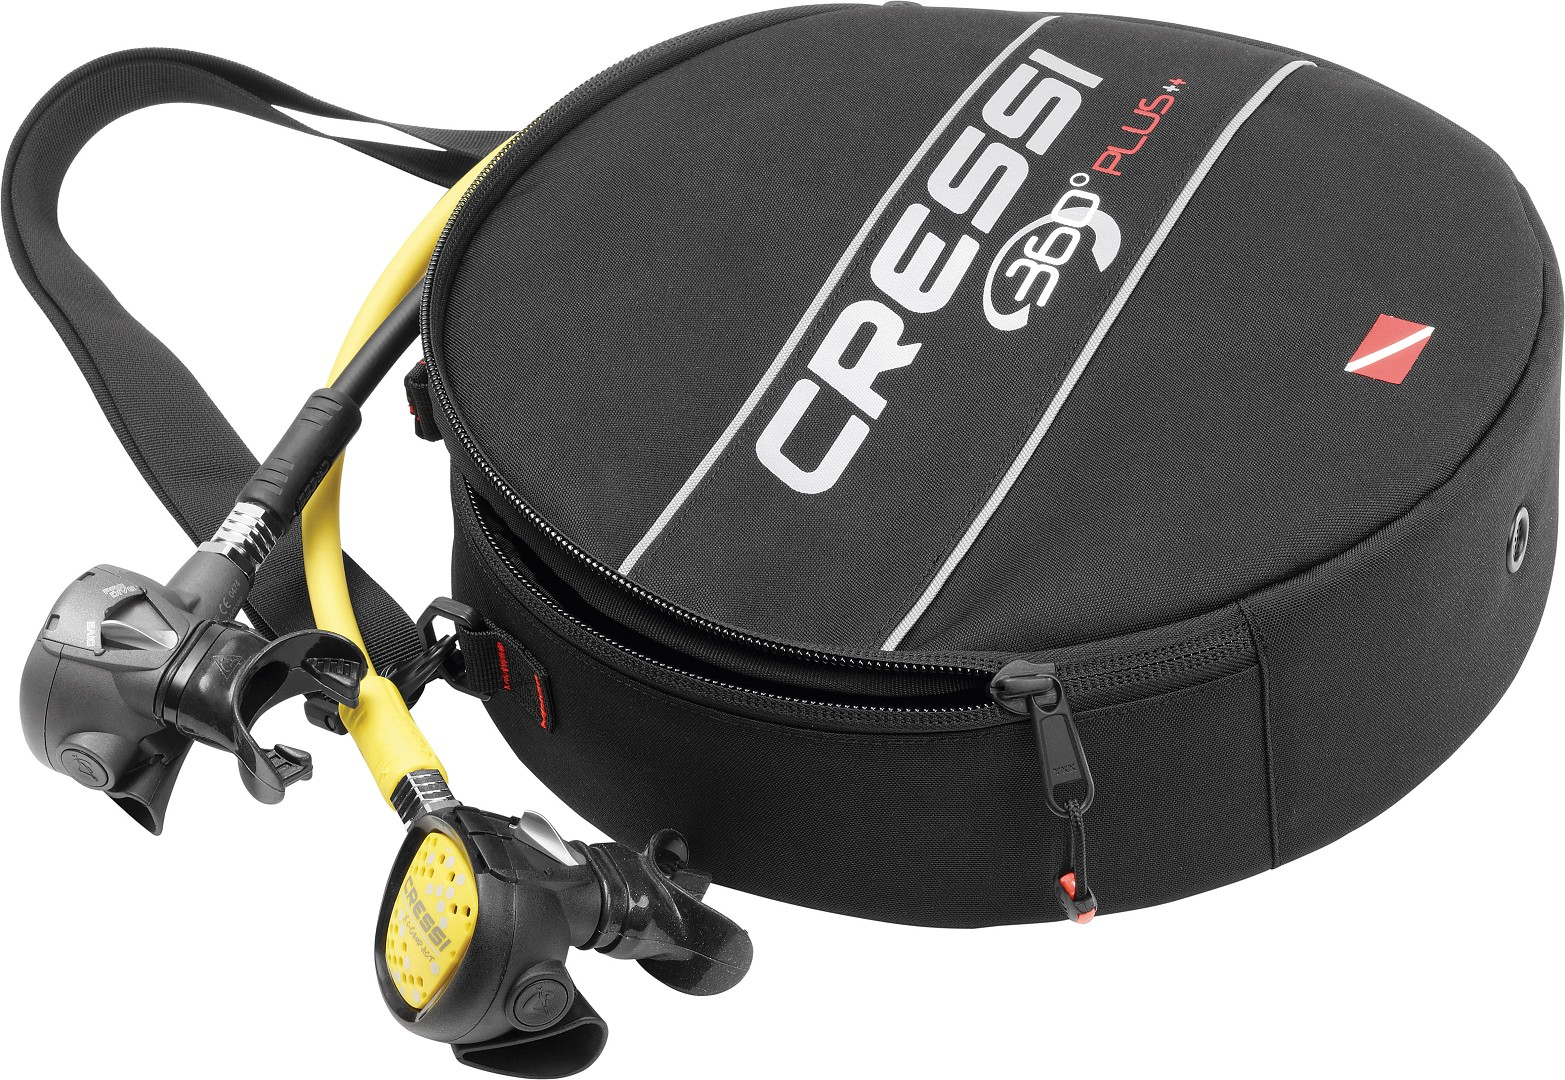 Cressi-Regulator bag